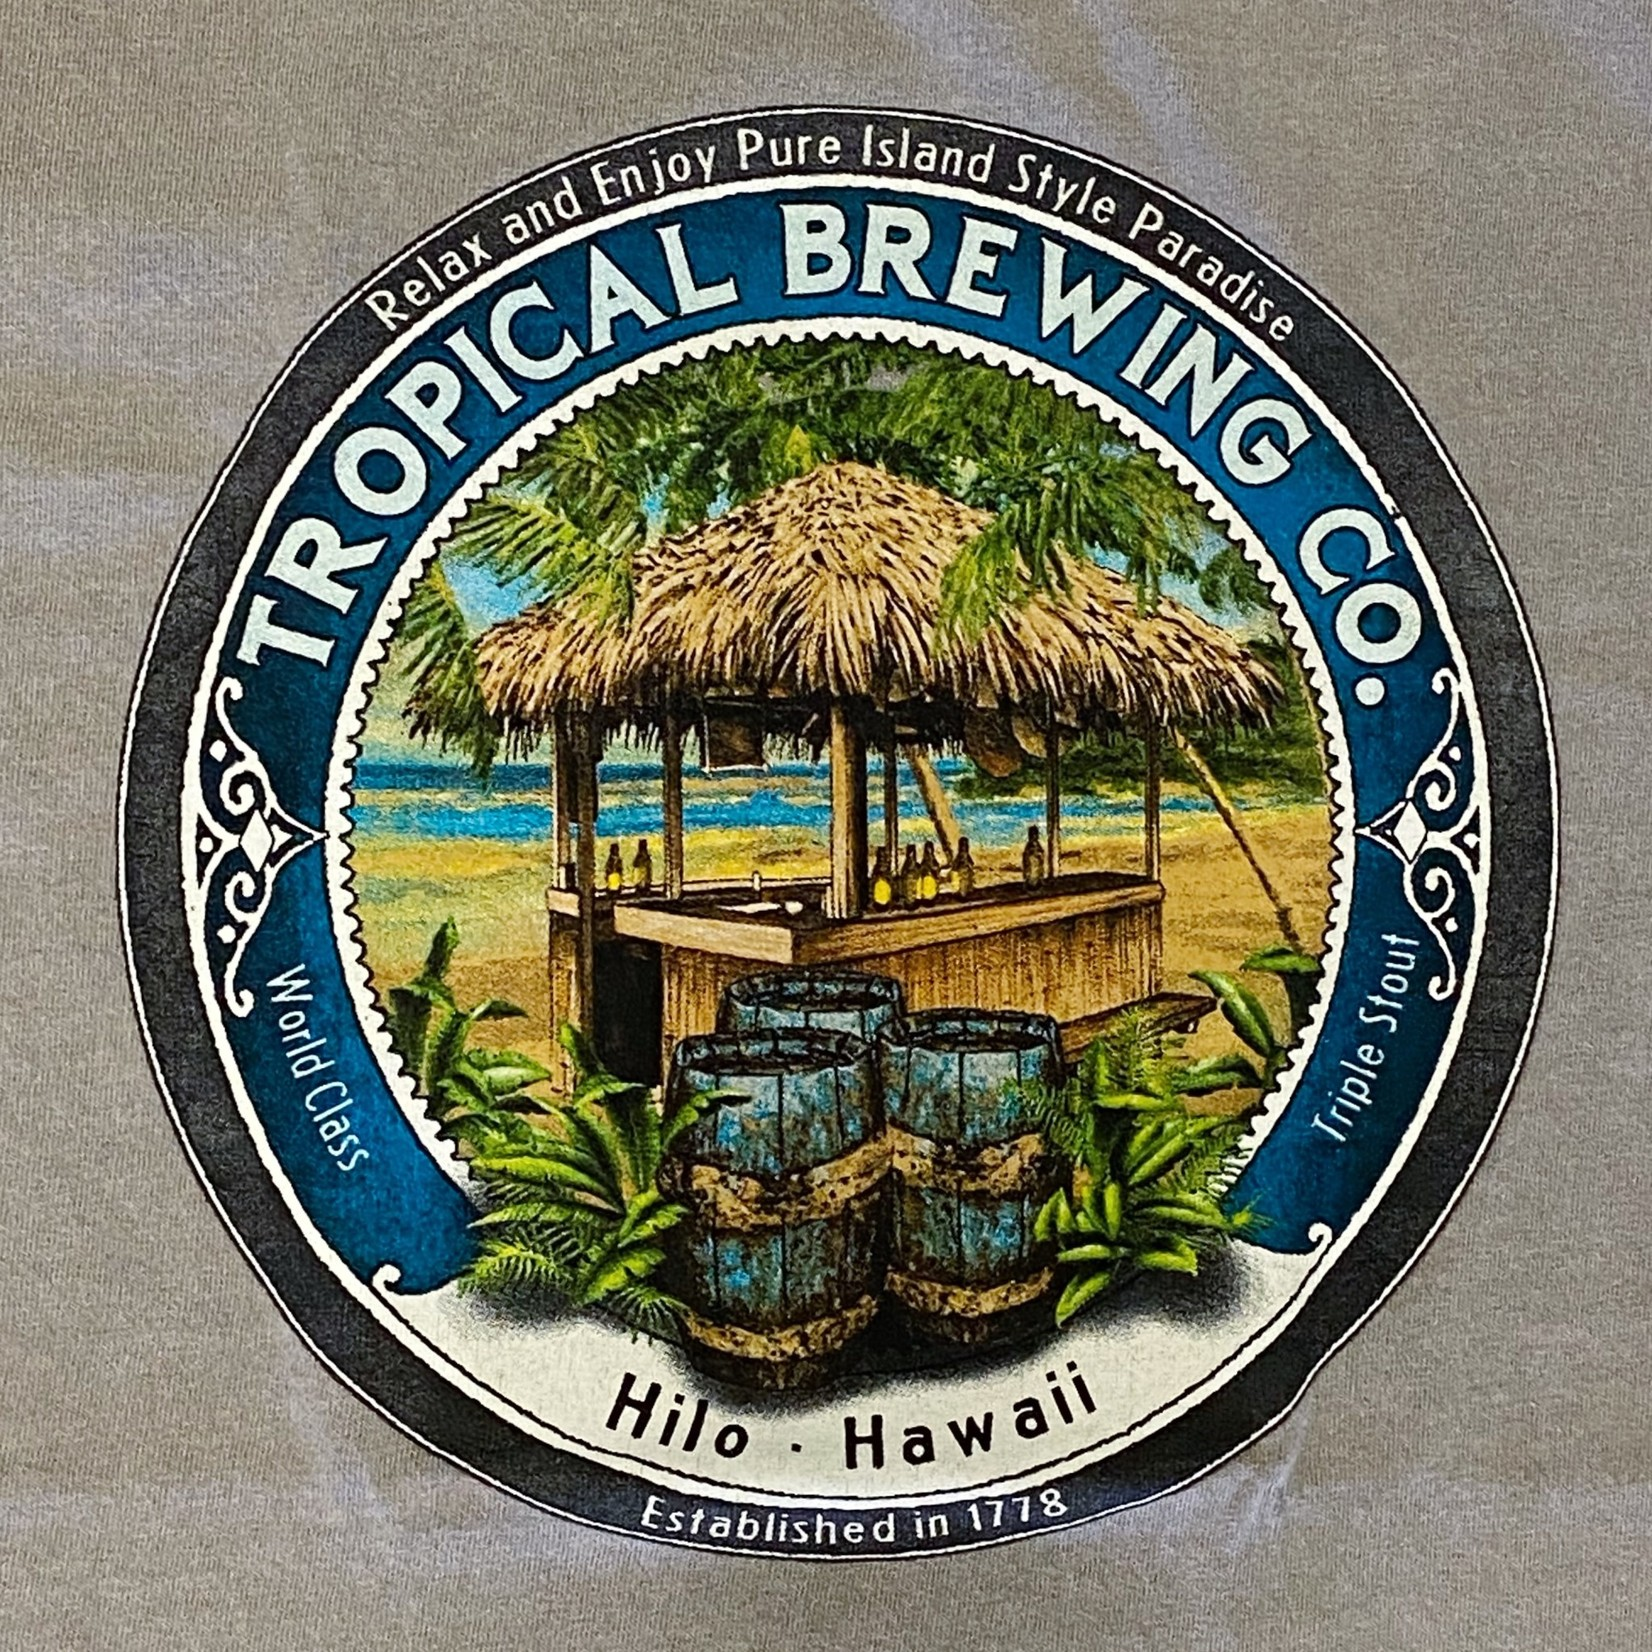 Blue 84 Tropical Brewing Co.